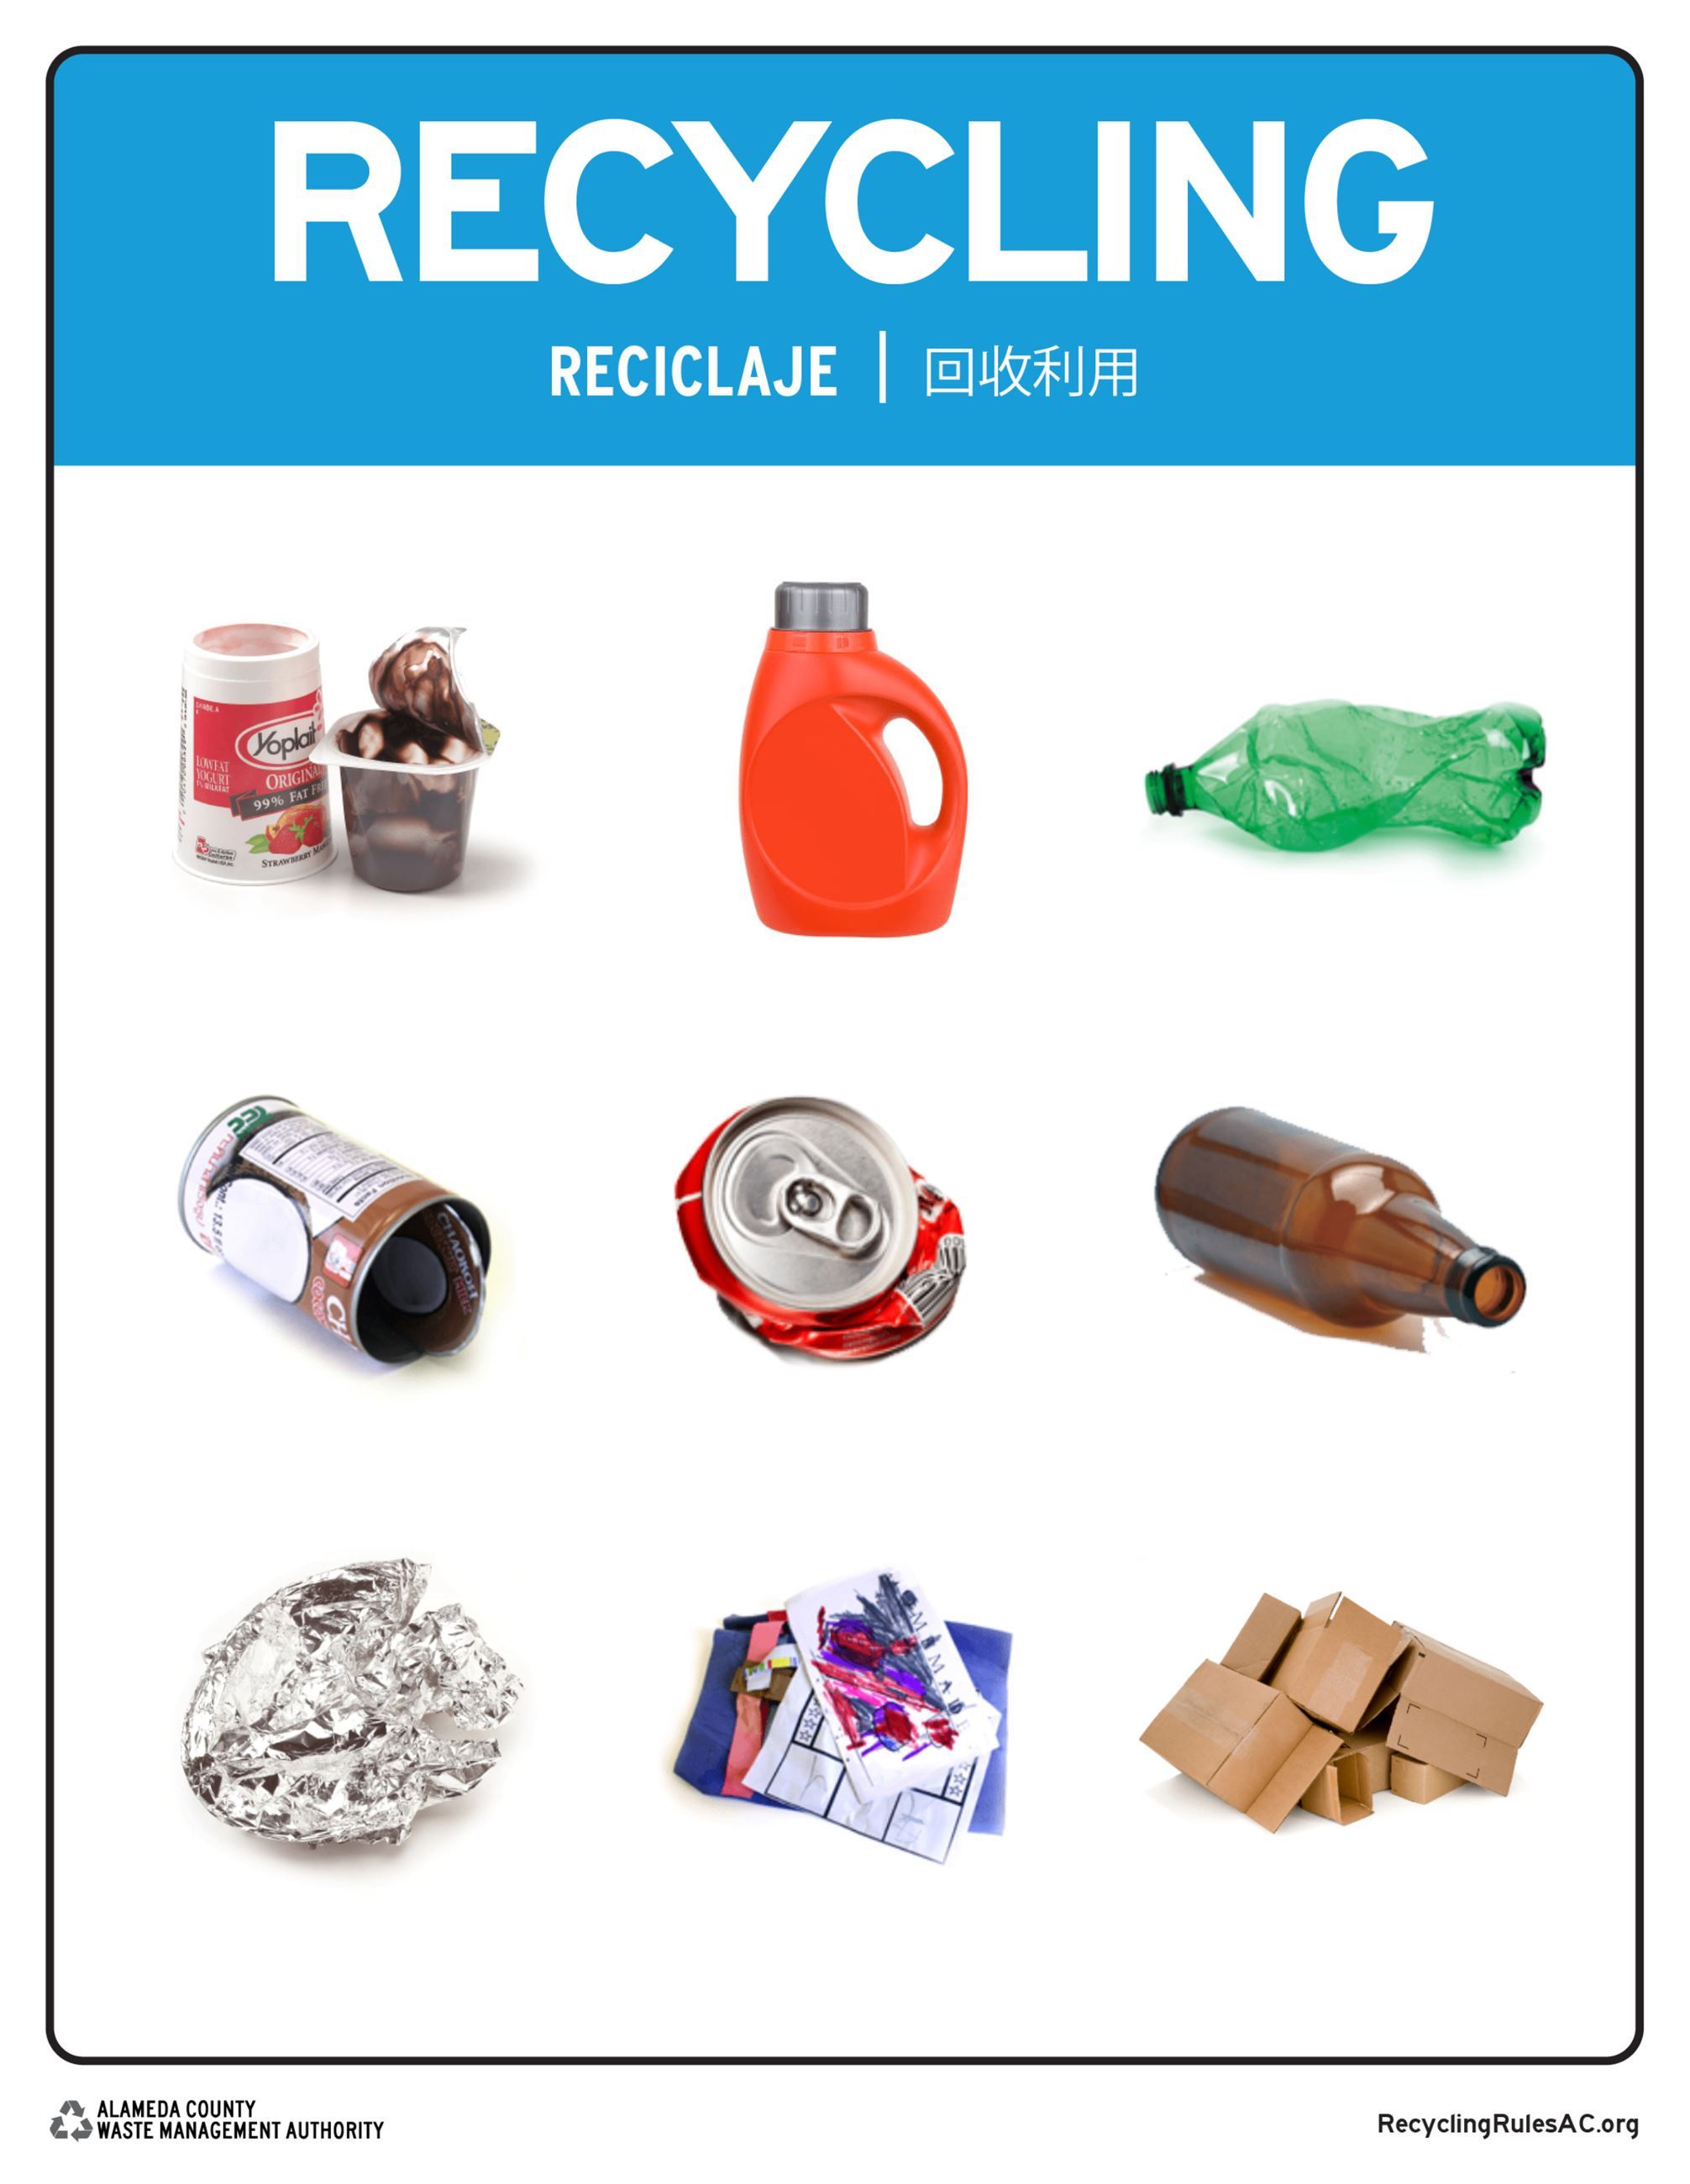 Recycling goods poster